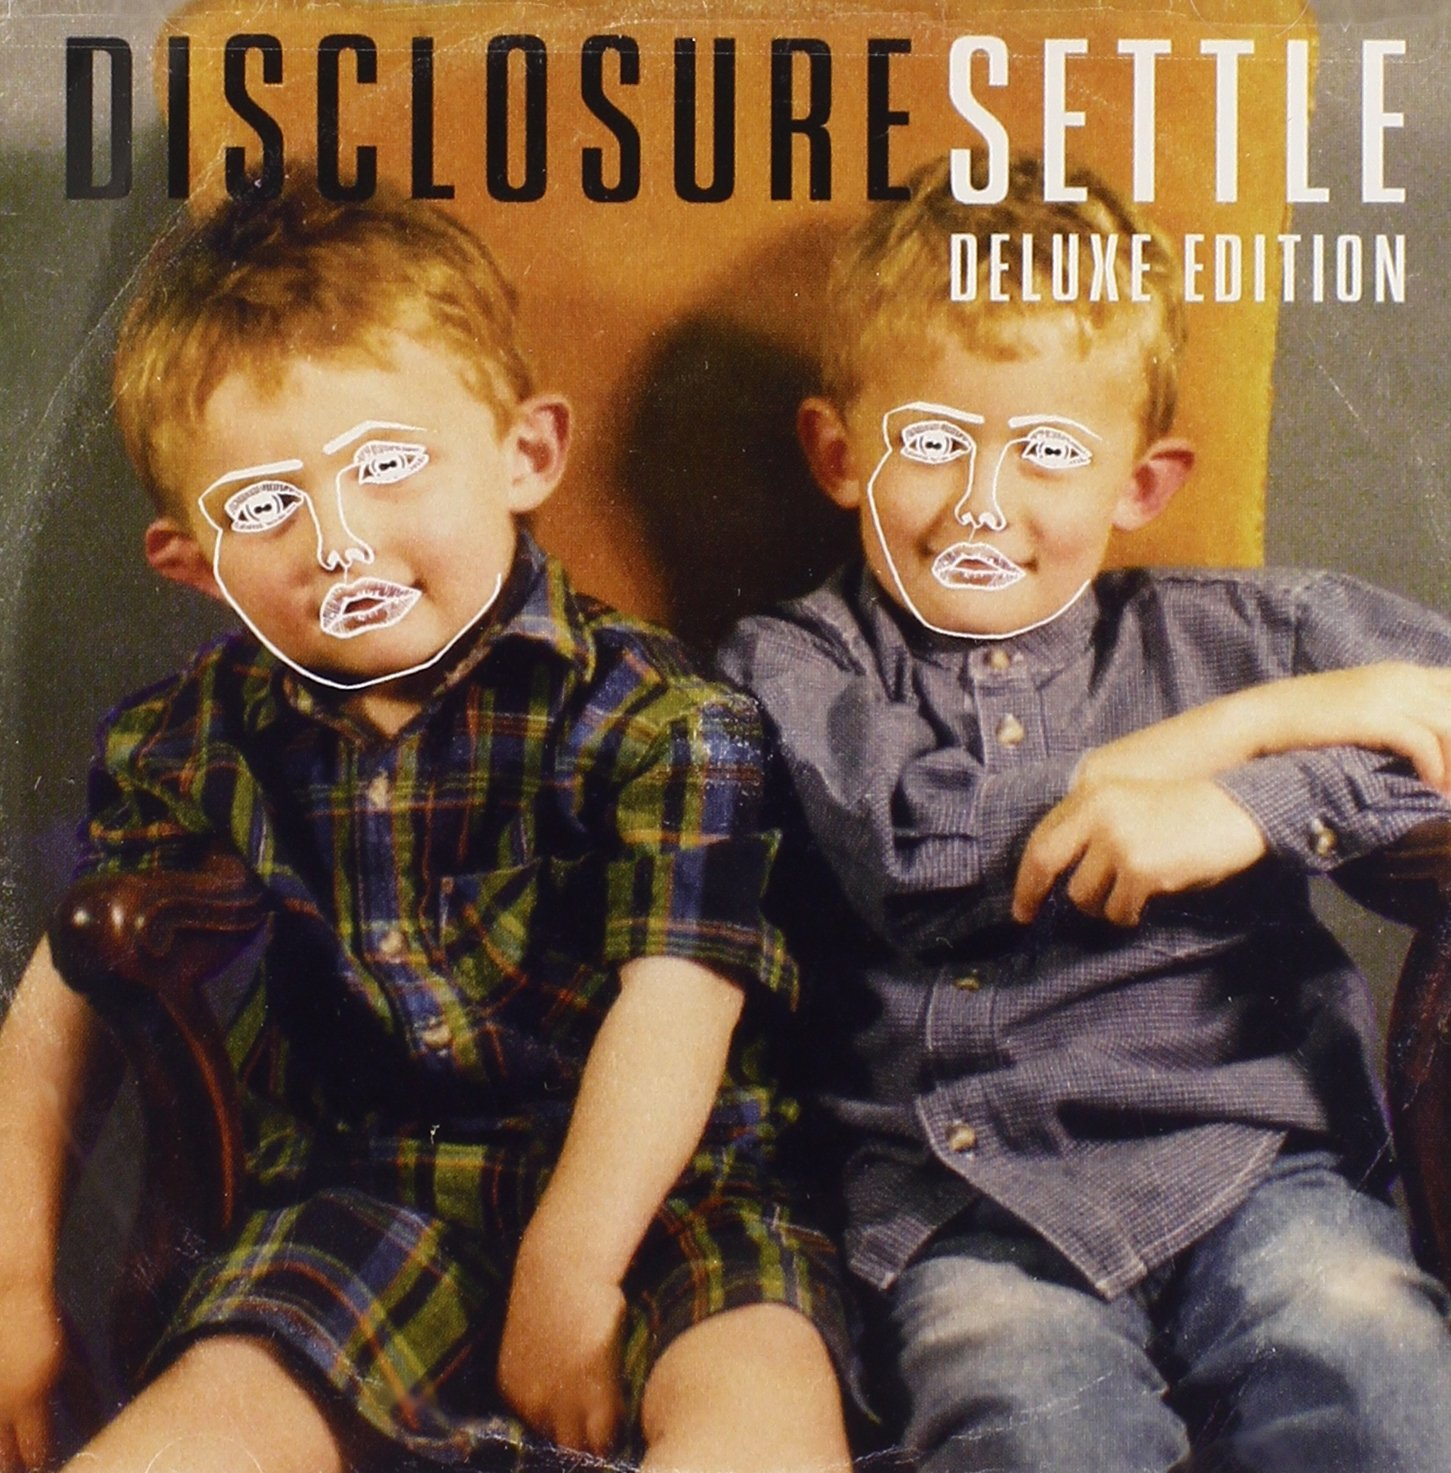 Art for White Noise by Disclosure